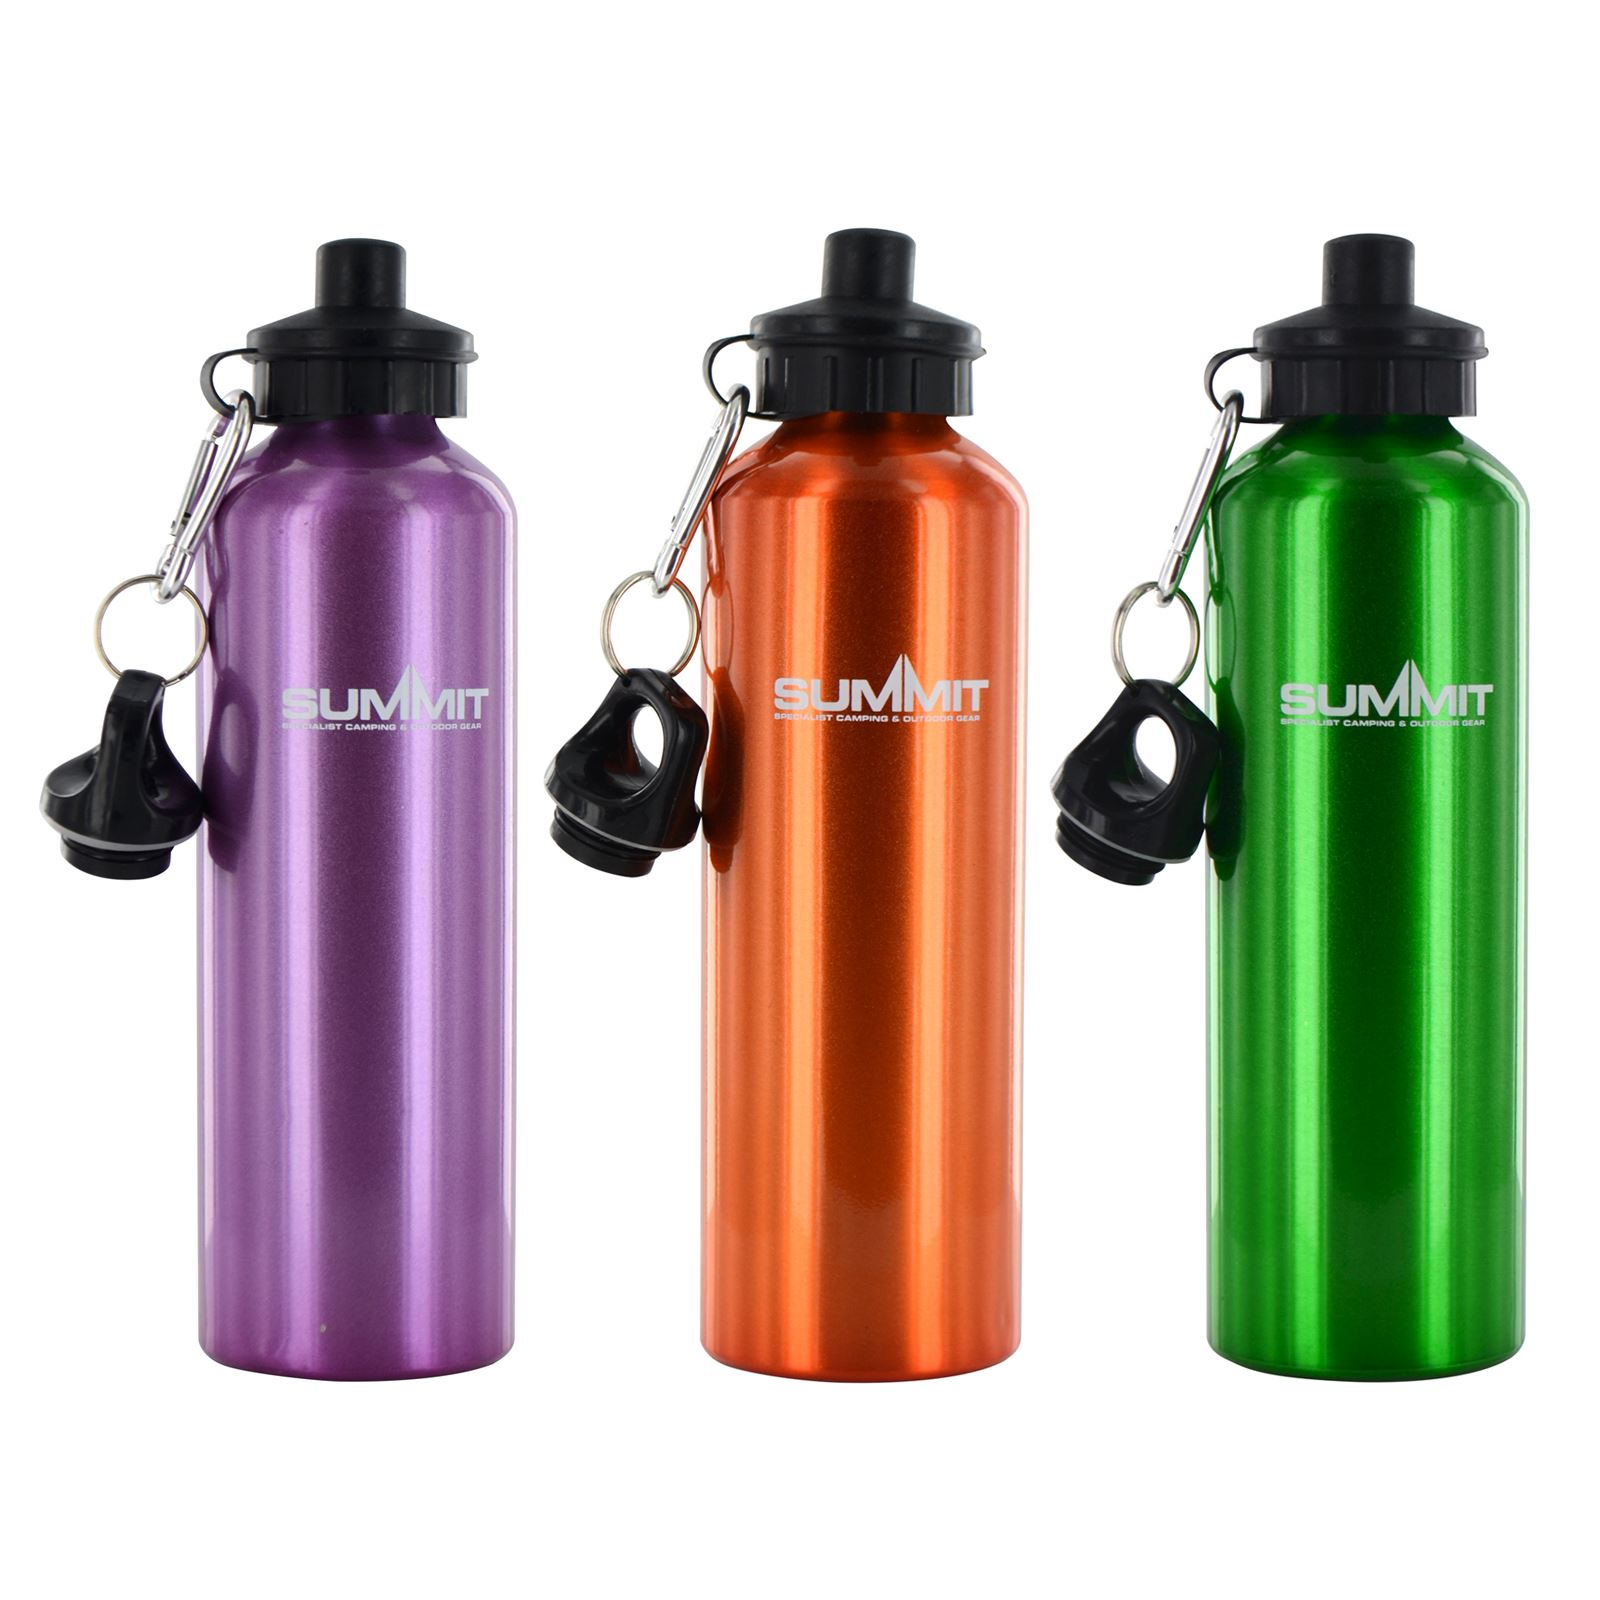 New metal sports bottle mug water drink drinking for for Gimnasio 9 entre 40 y 41